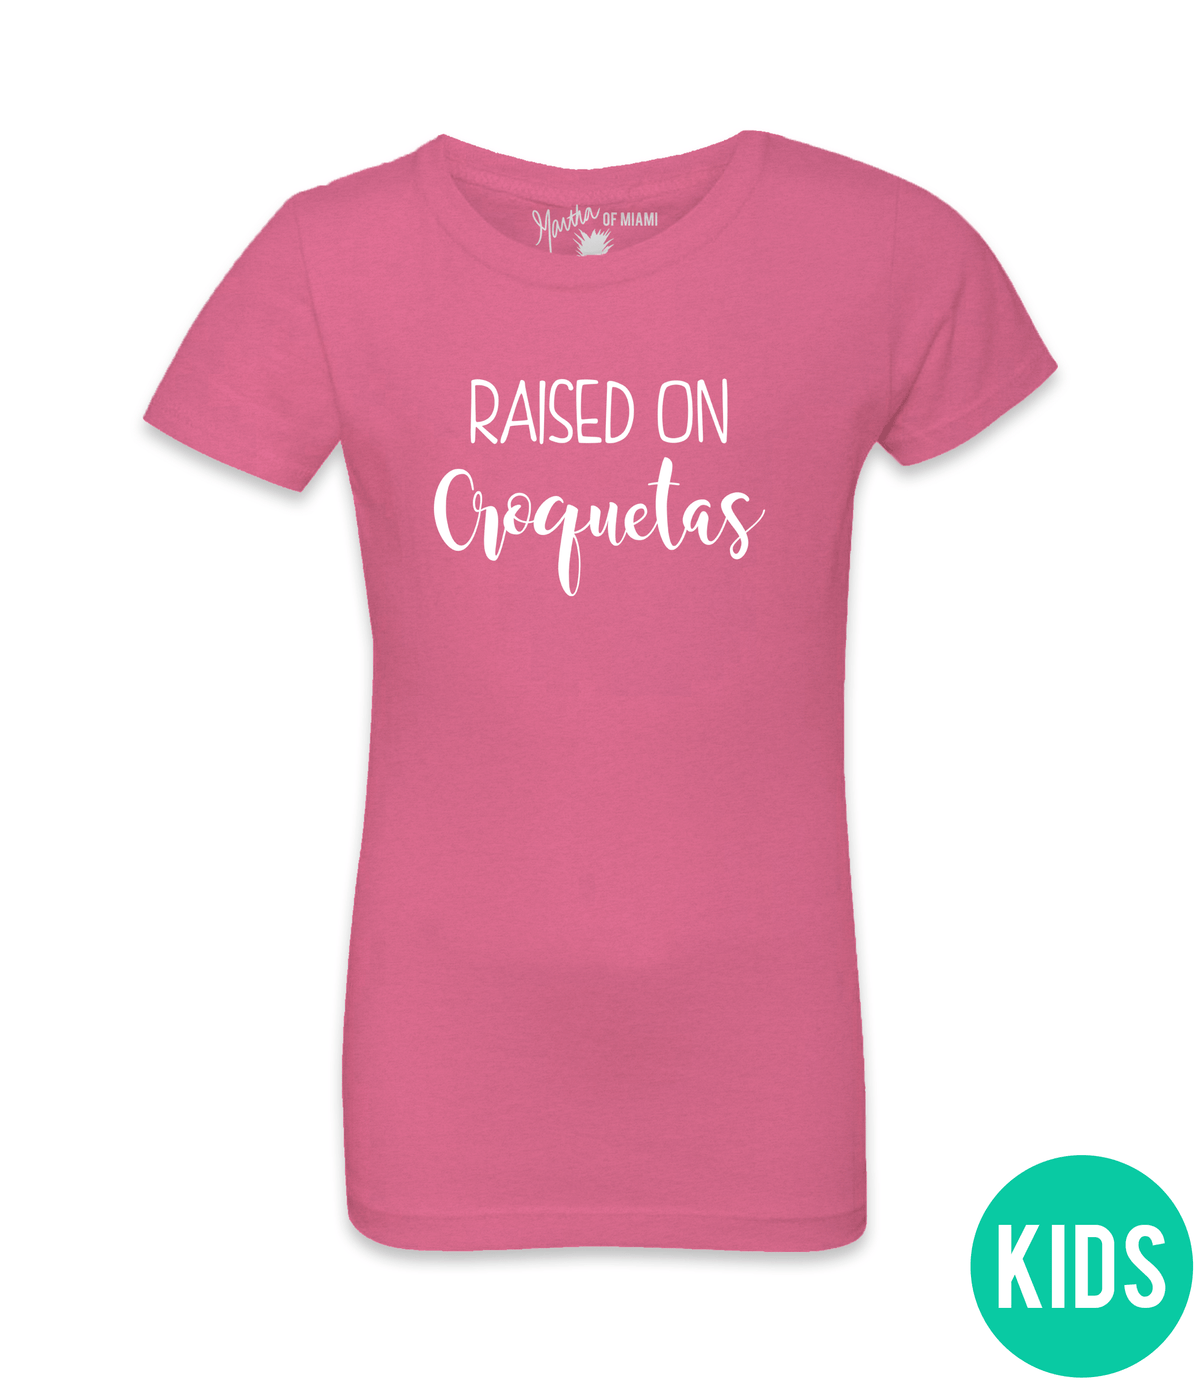 Raised On Croquetas Tee - Girls